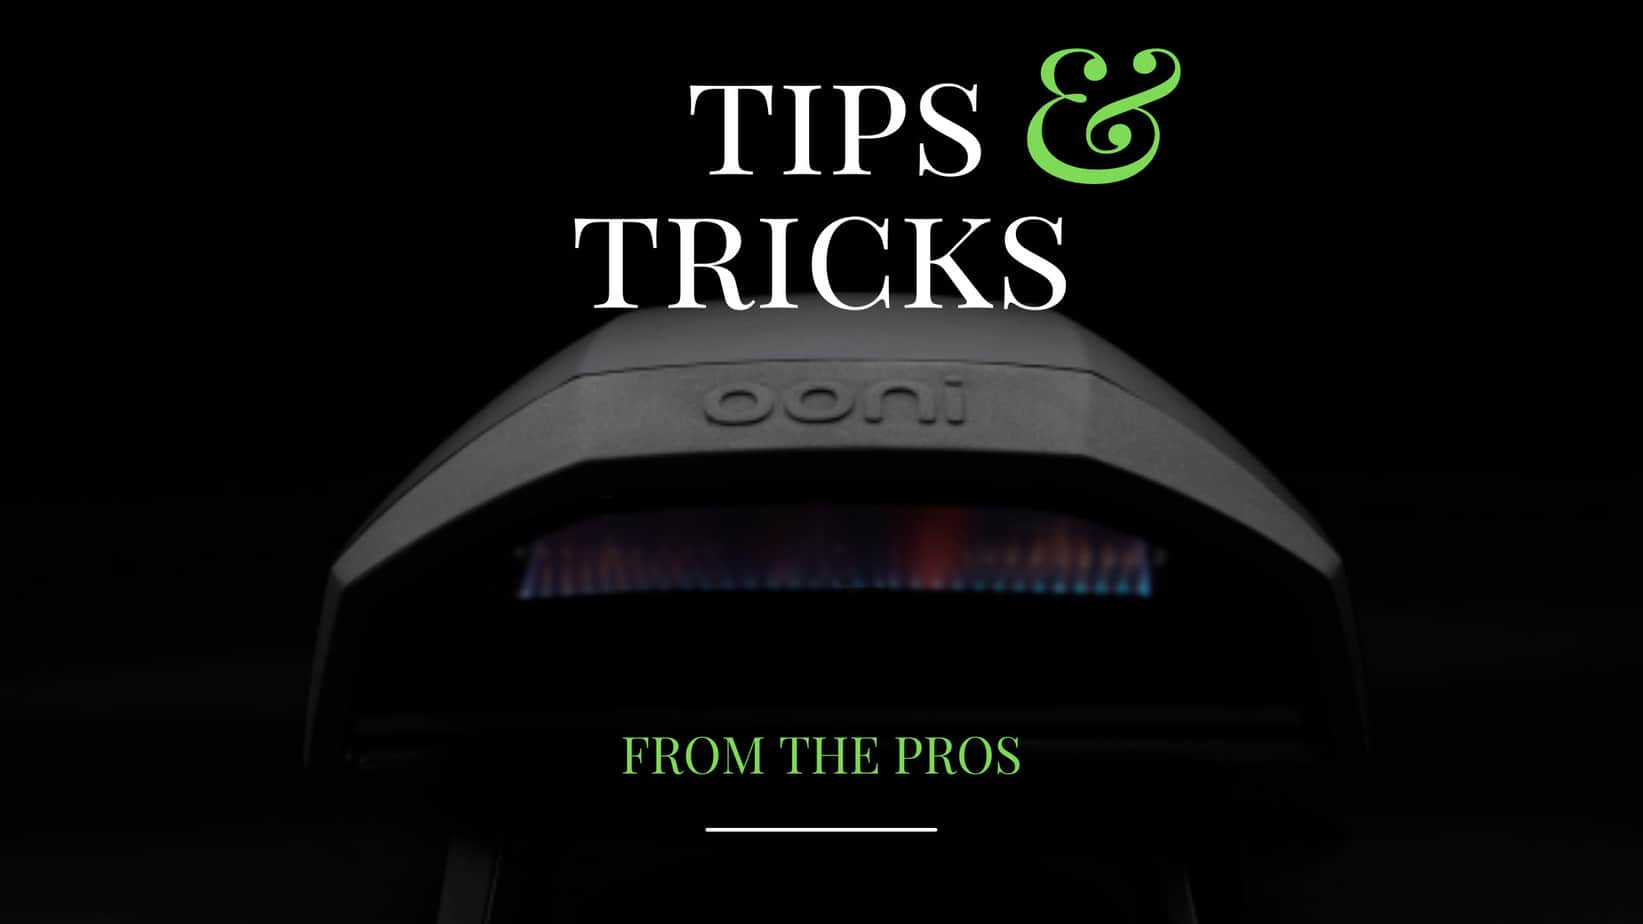 Ooni Pizza Oven Tips